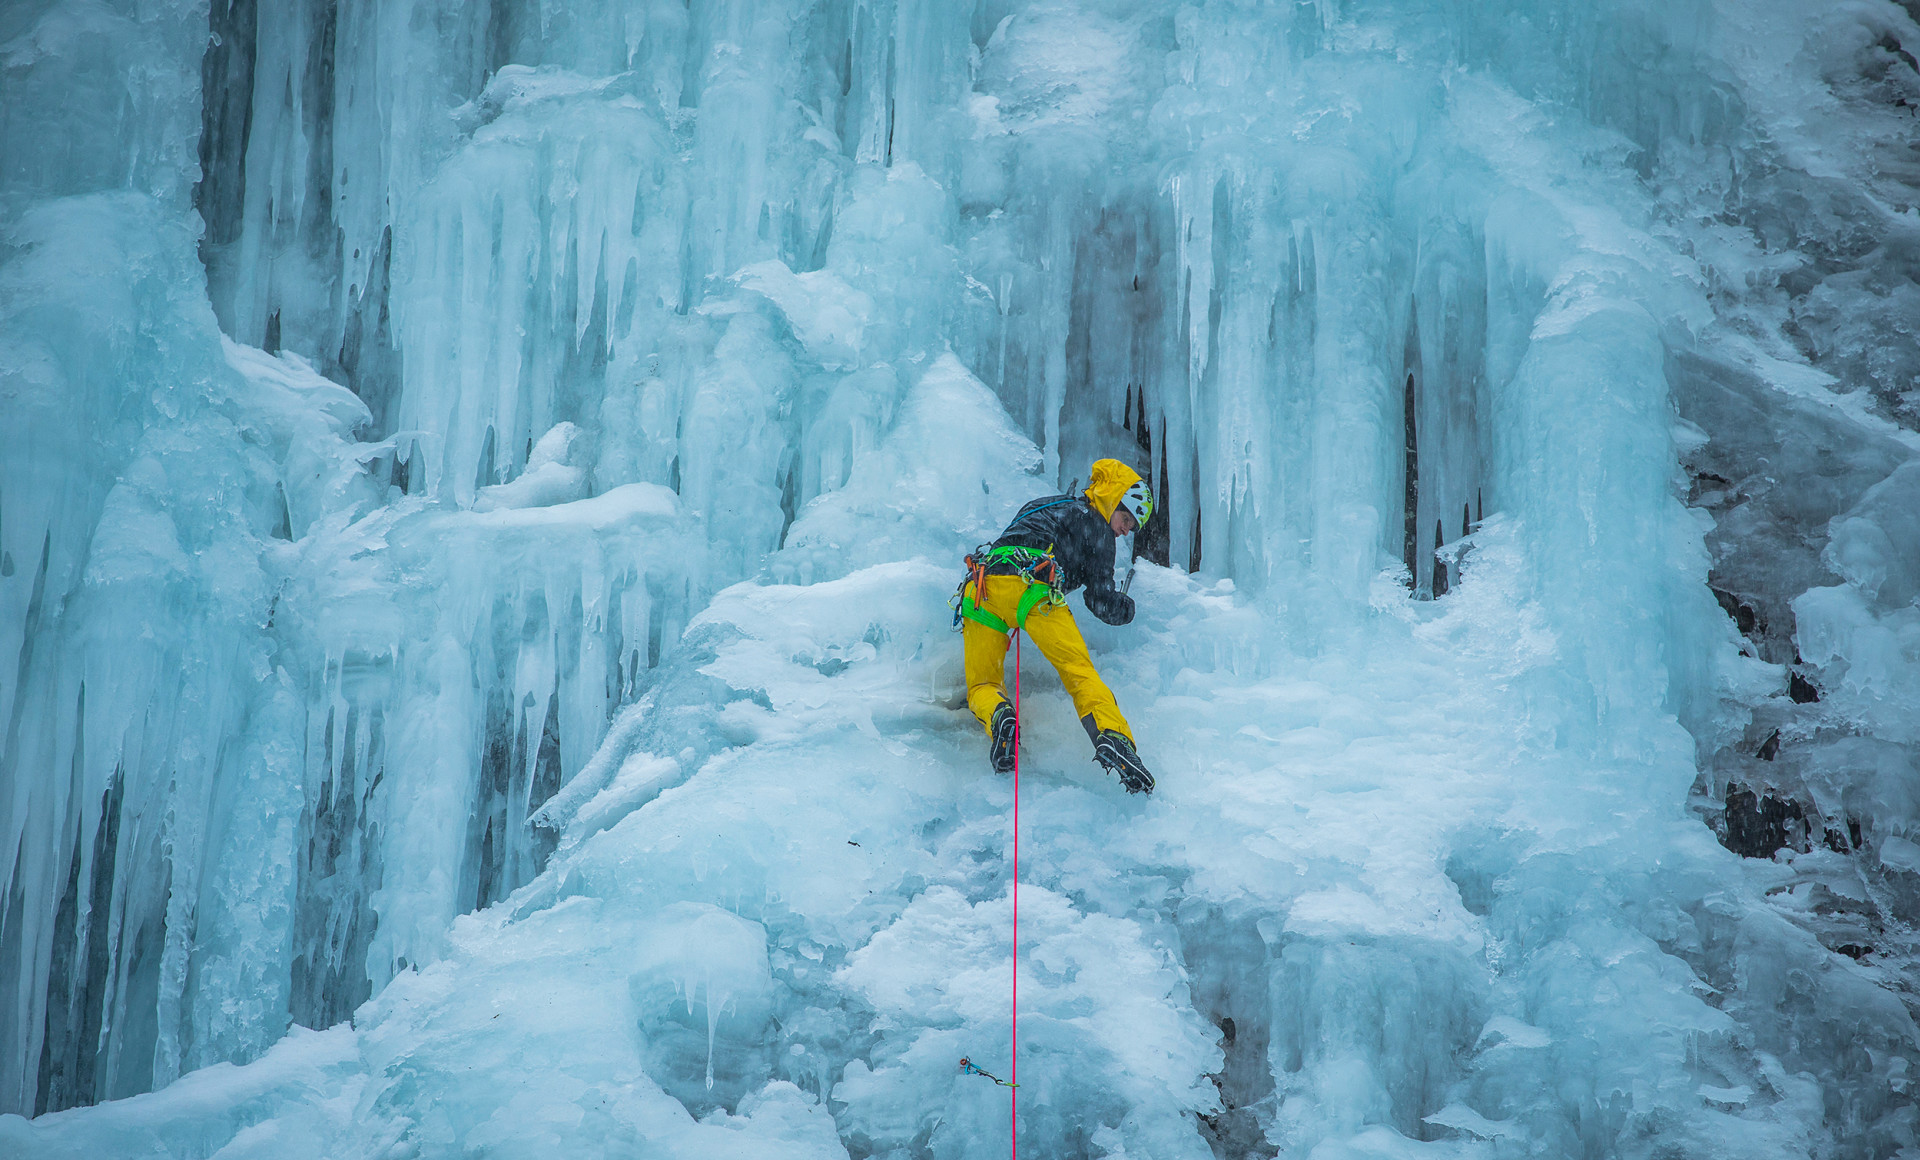 Climbers have to rely completely on their boots when they tackle such extreme walls of ice.